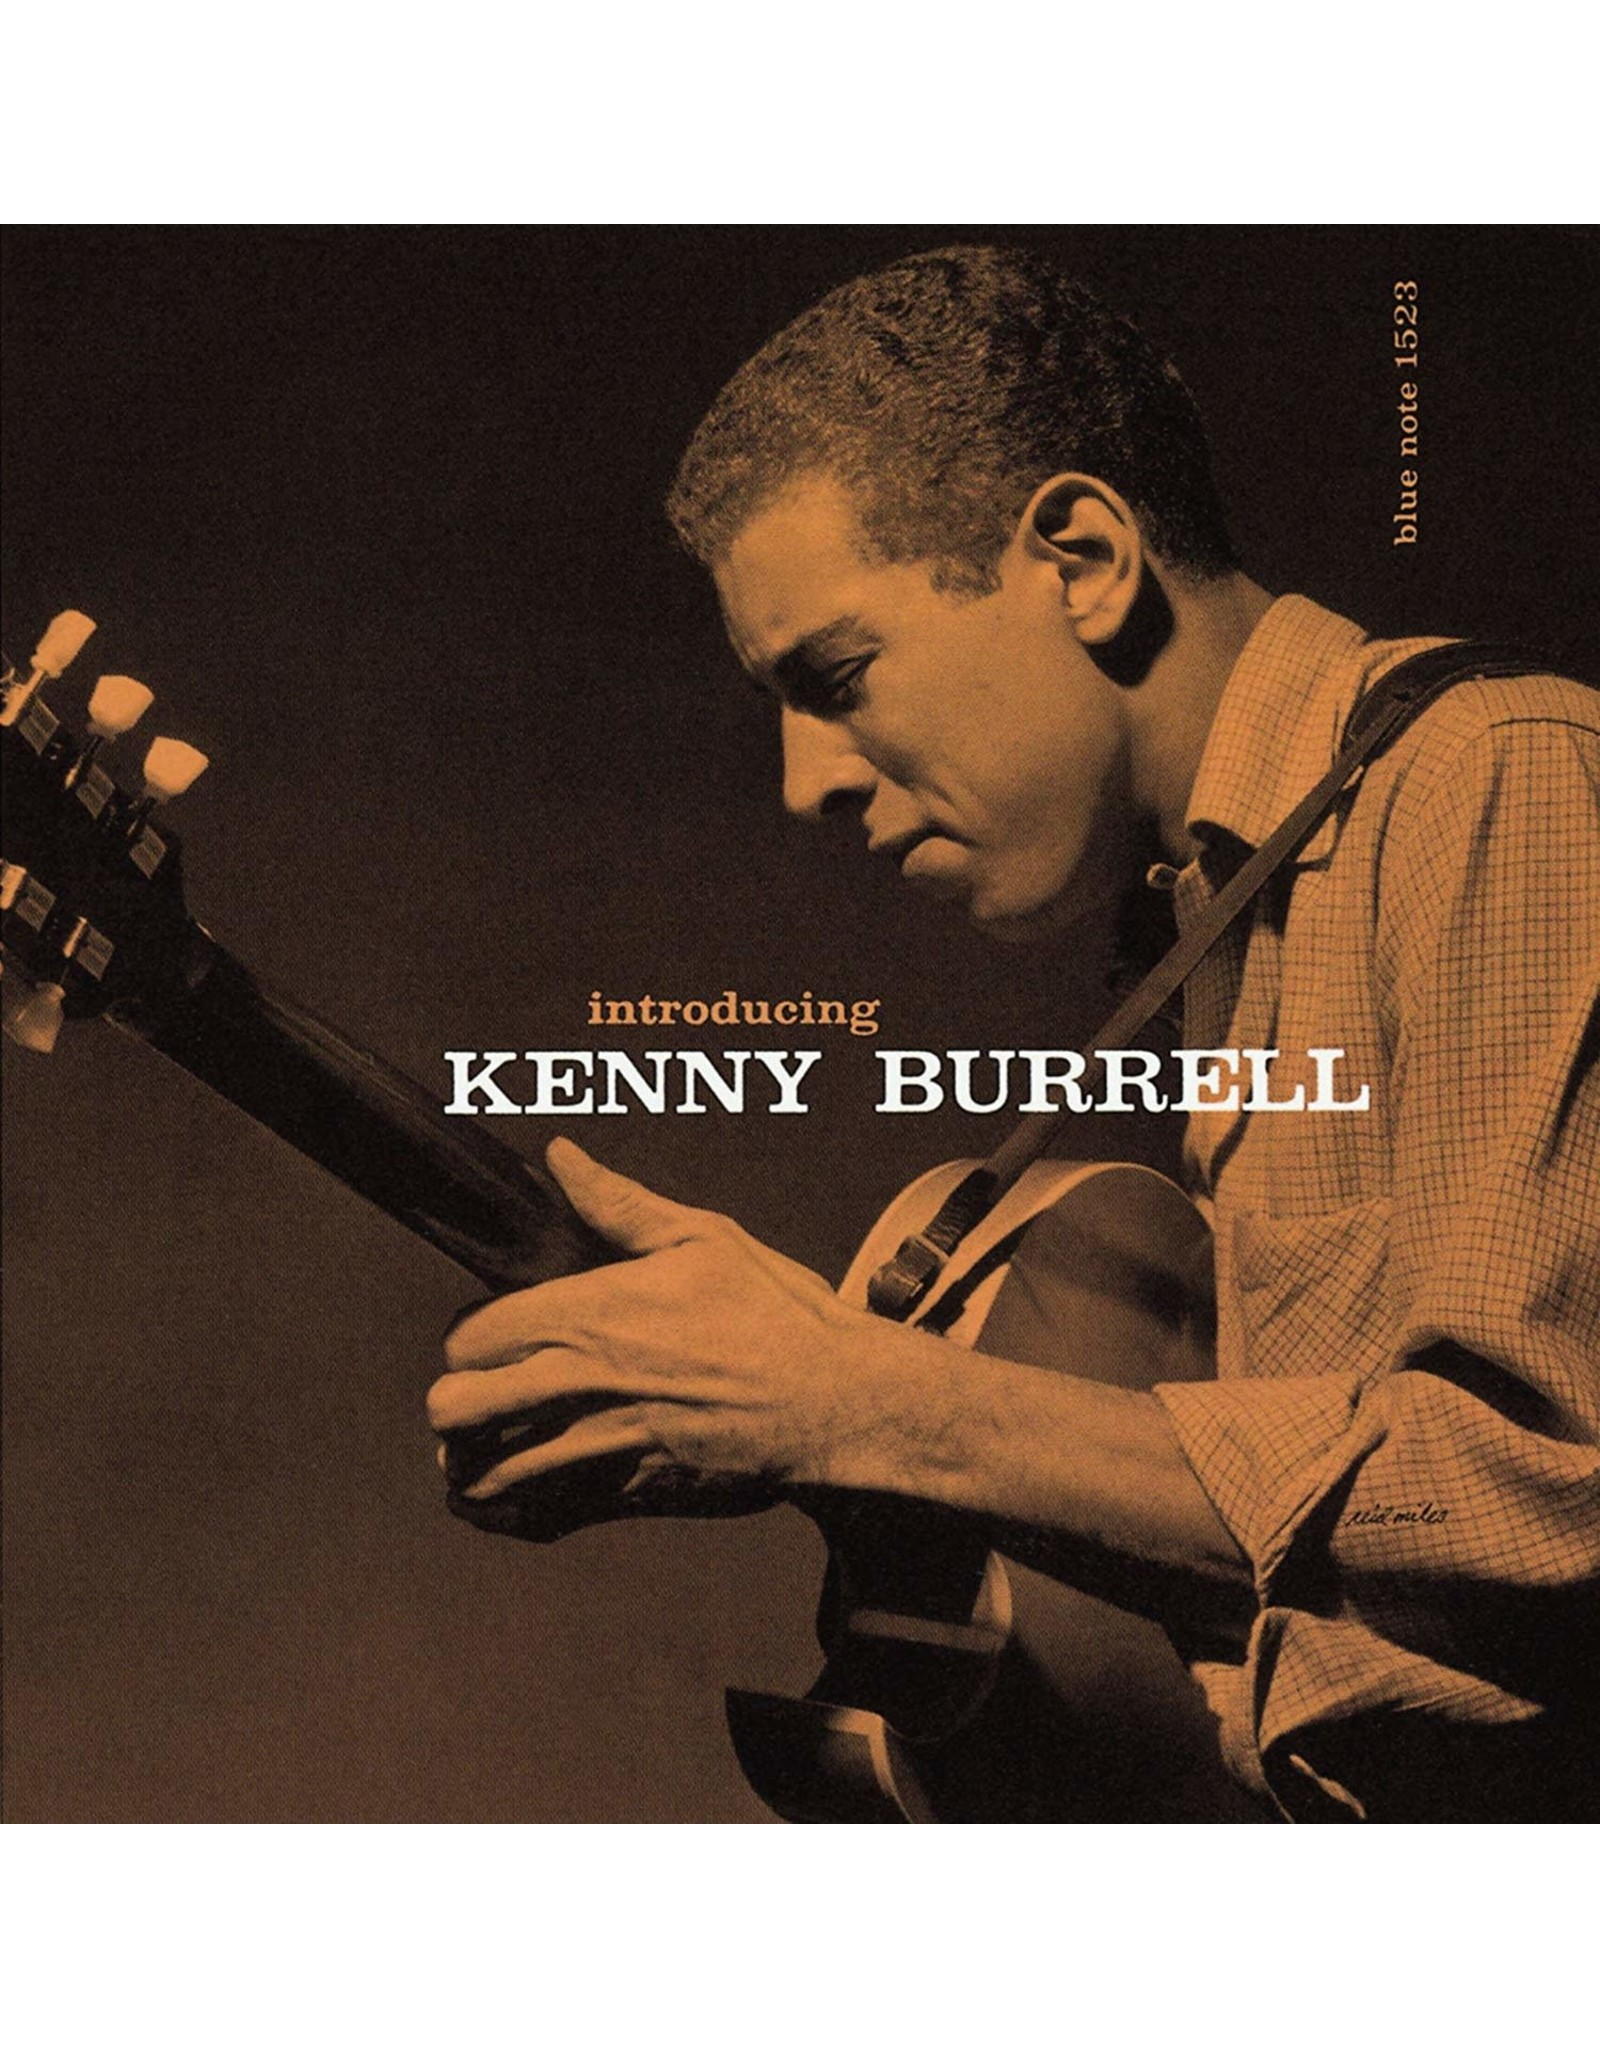 Kenny Burrell - Introducing Kenny Burrell (Blue Note Tone Poet)